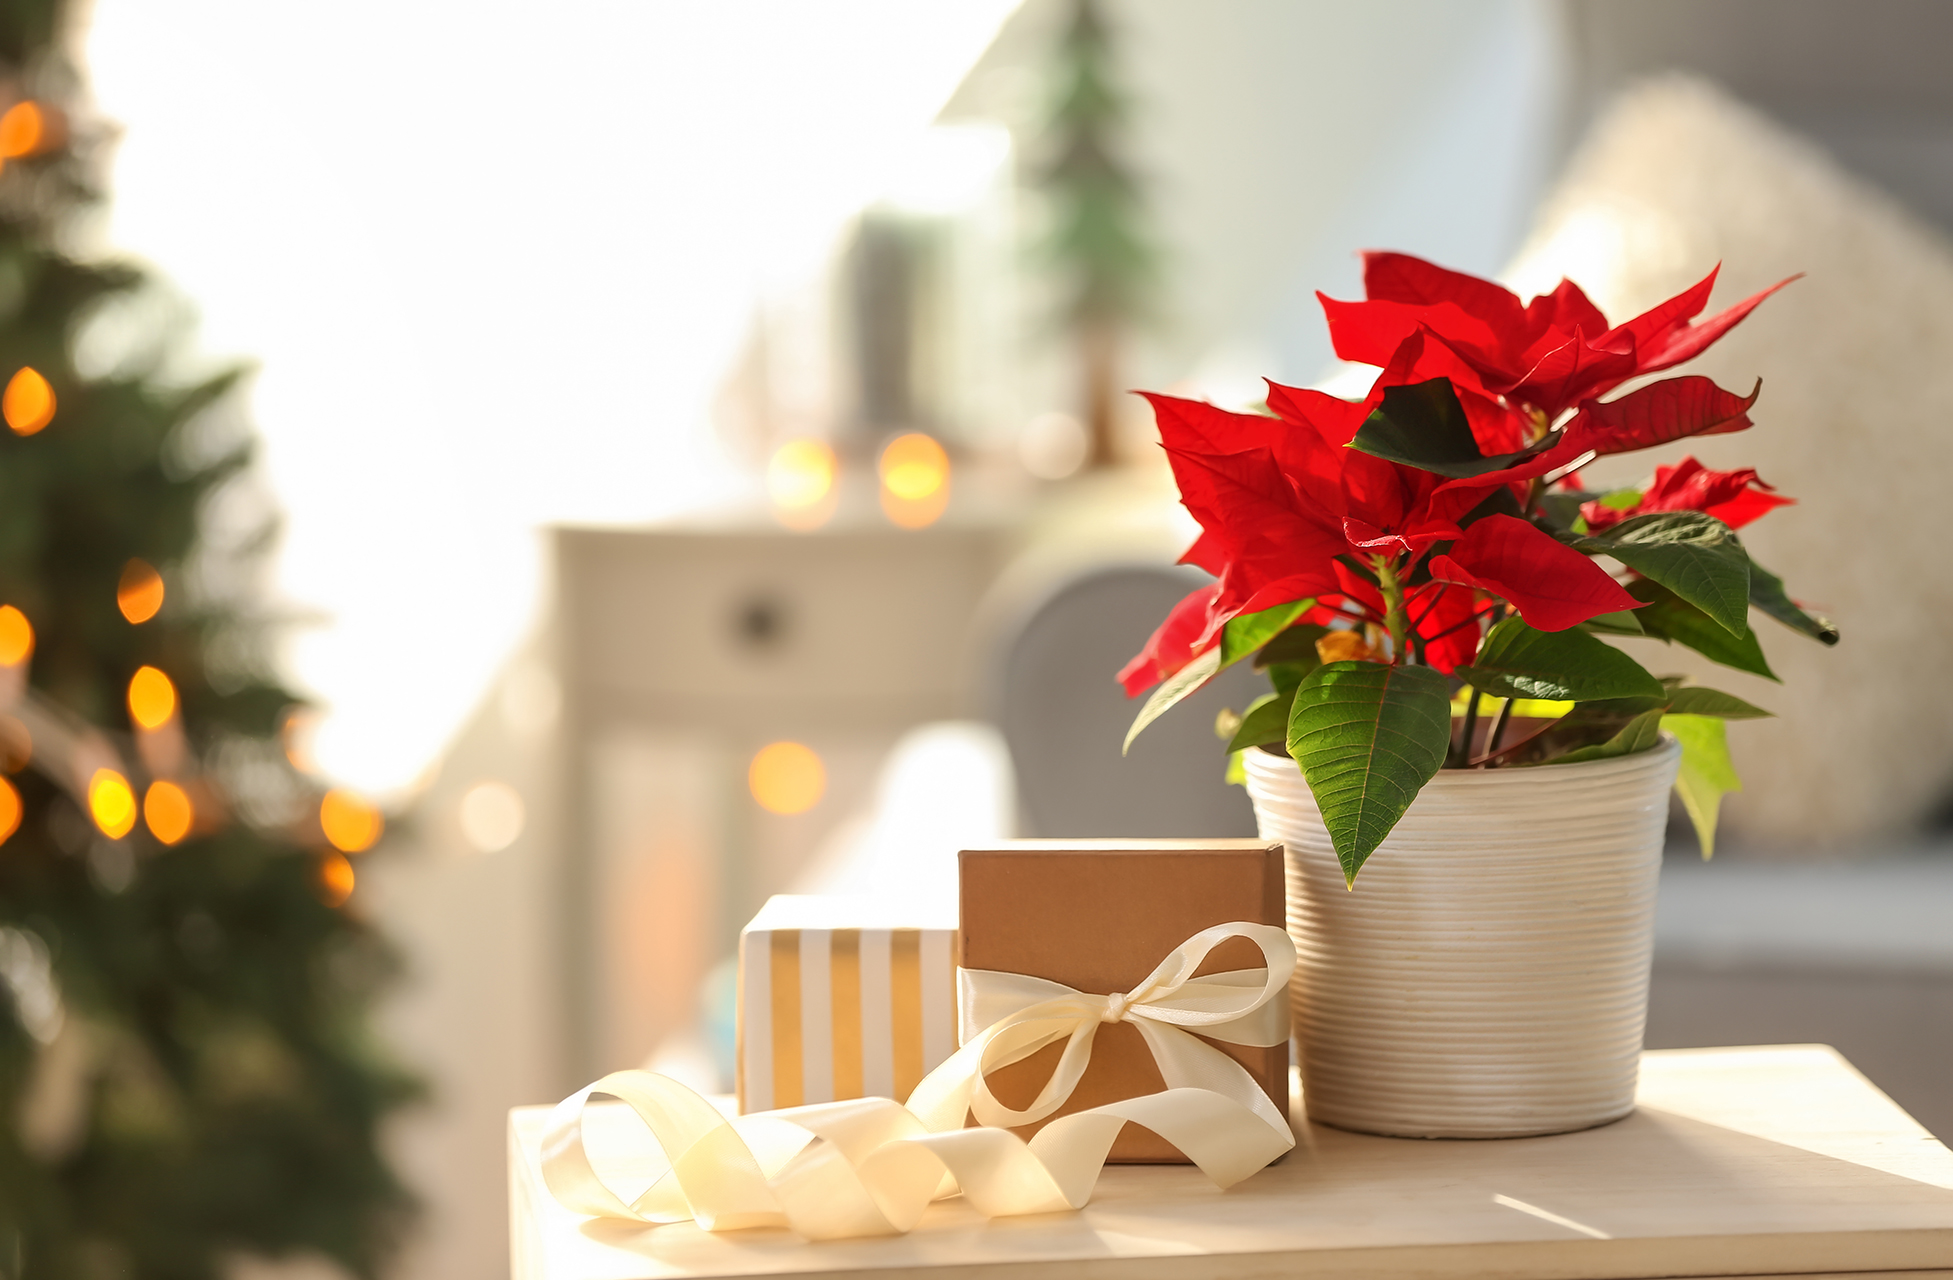 holiday poinsettia plan small gift packages